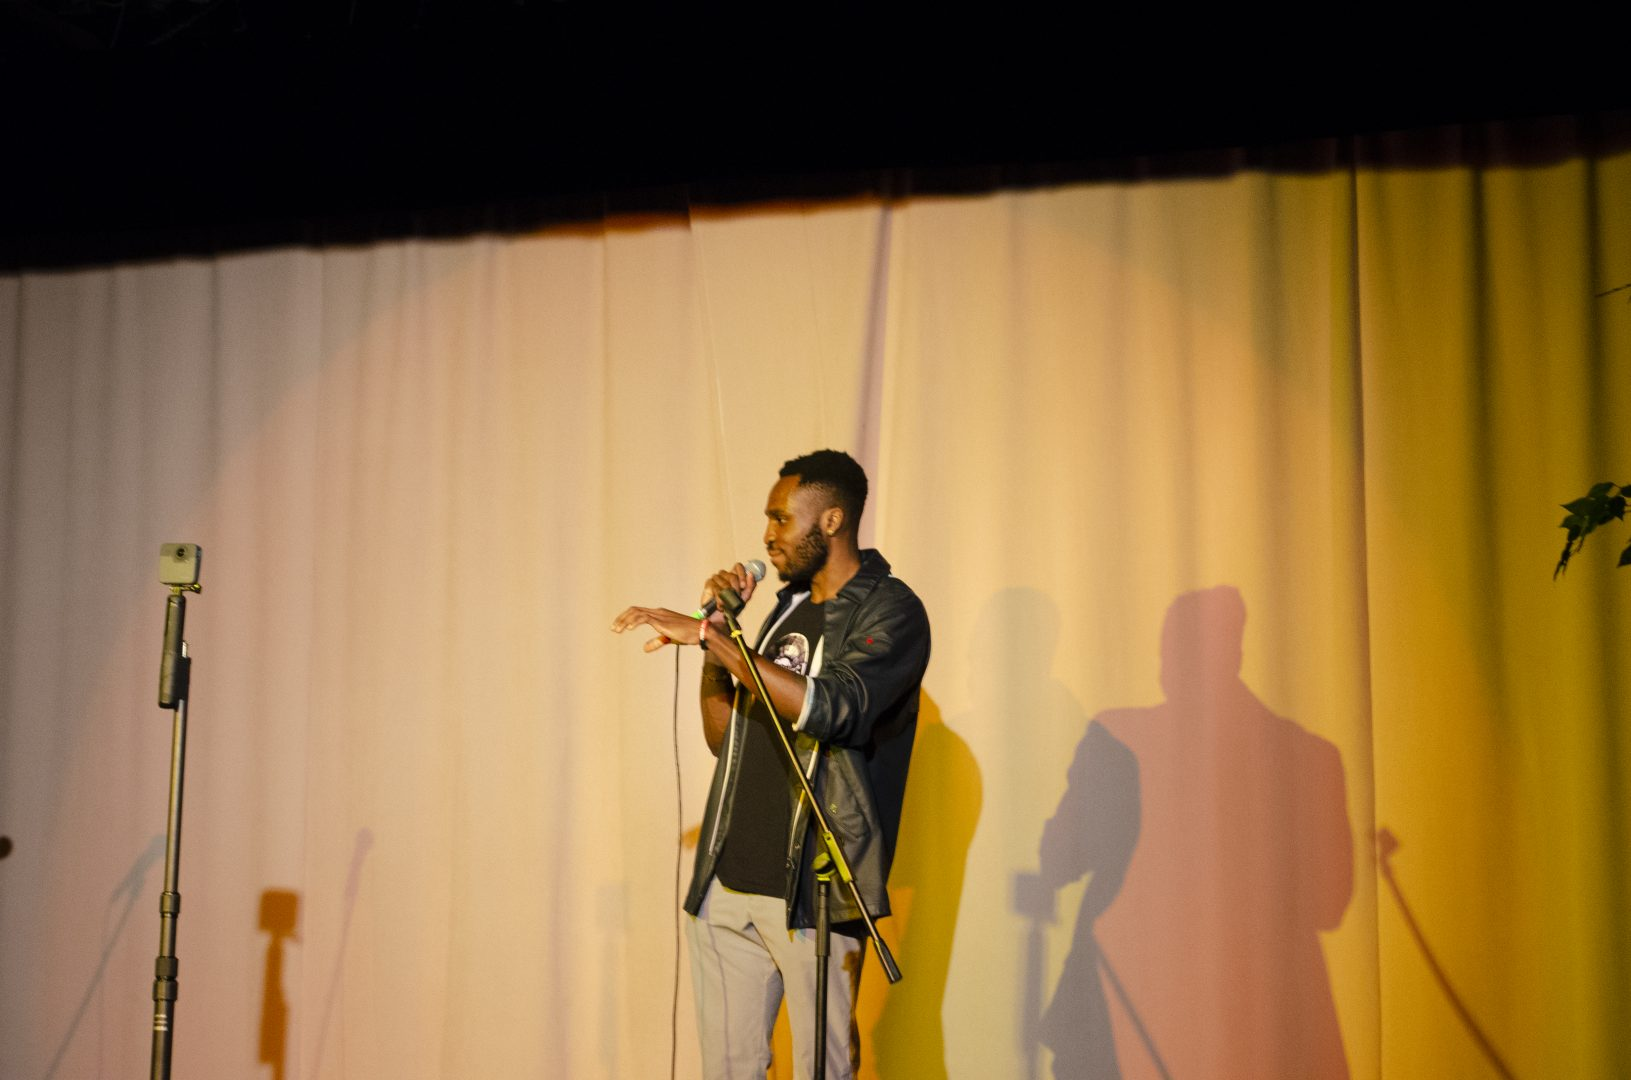 """Boyojoy giving an intro to his collaborative album """"Broken Record' standing on stage speaking into a microphone with a yellow curtain behind."""